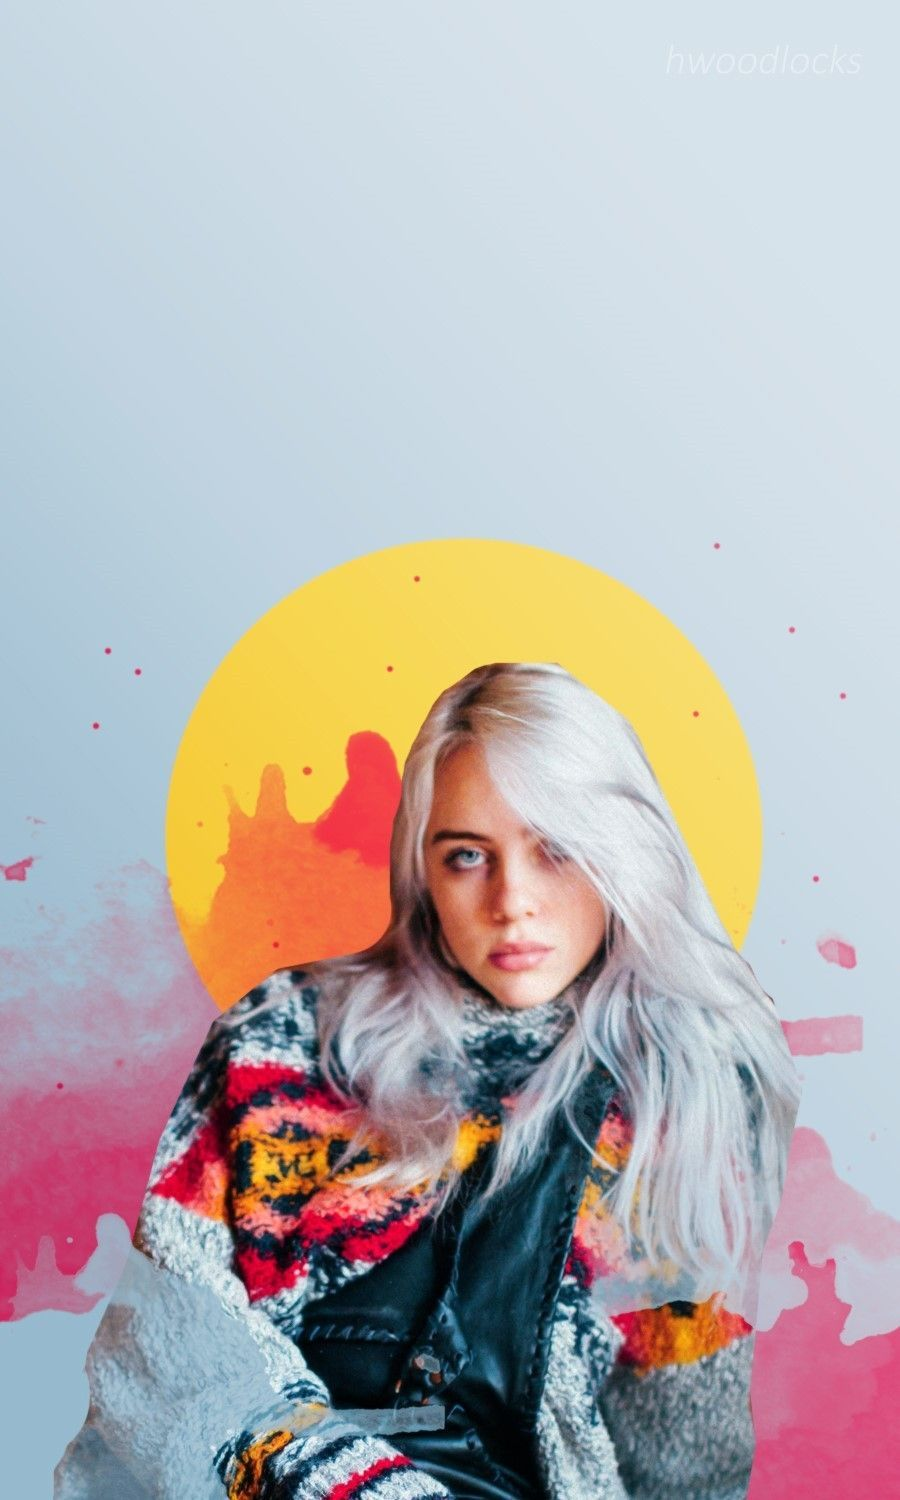 Billie Eilish Wallpapers Wallpaper Cave In 2020 Billie Eilish Billie Best Iphone Wallpapers